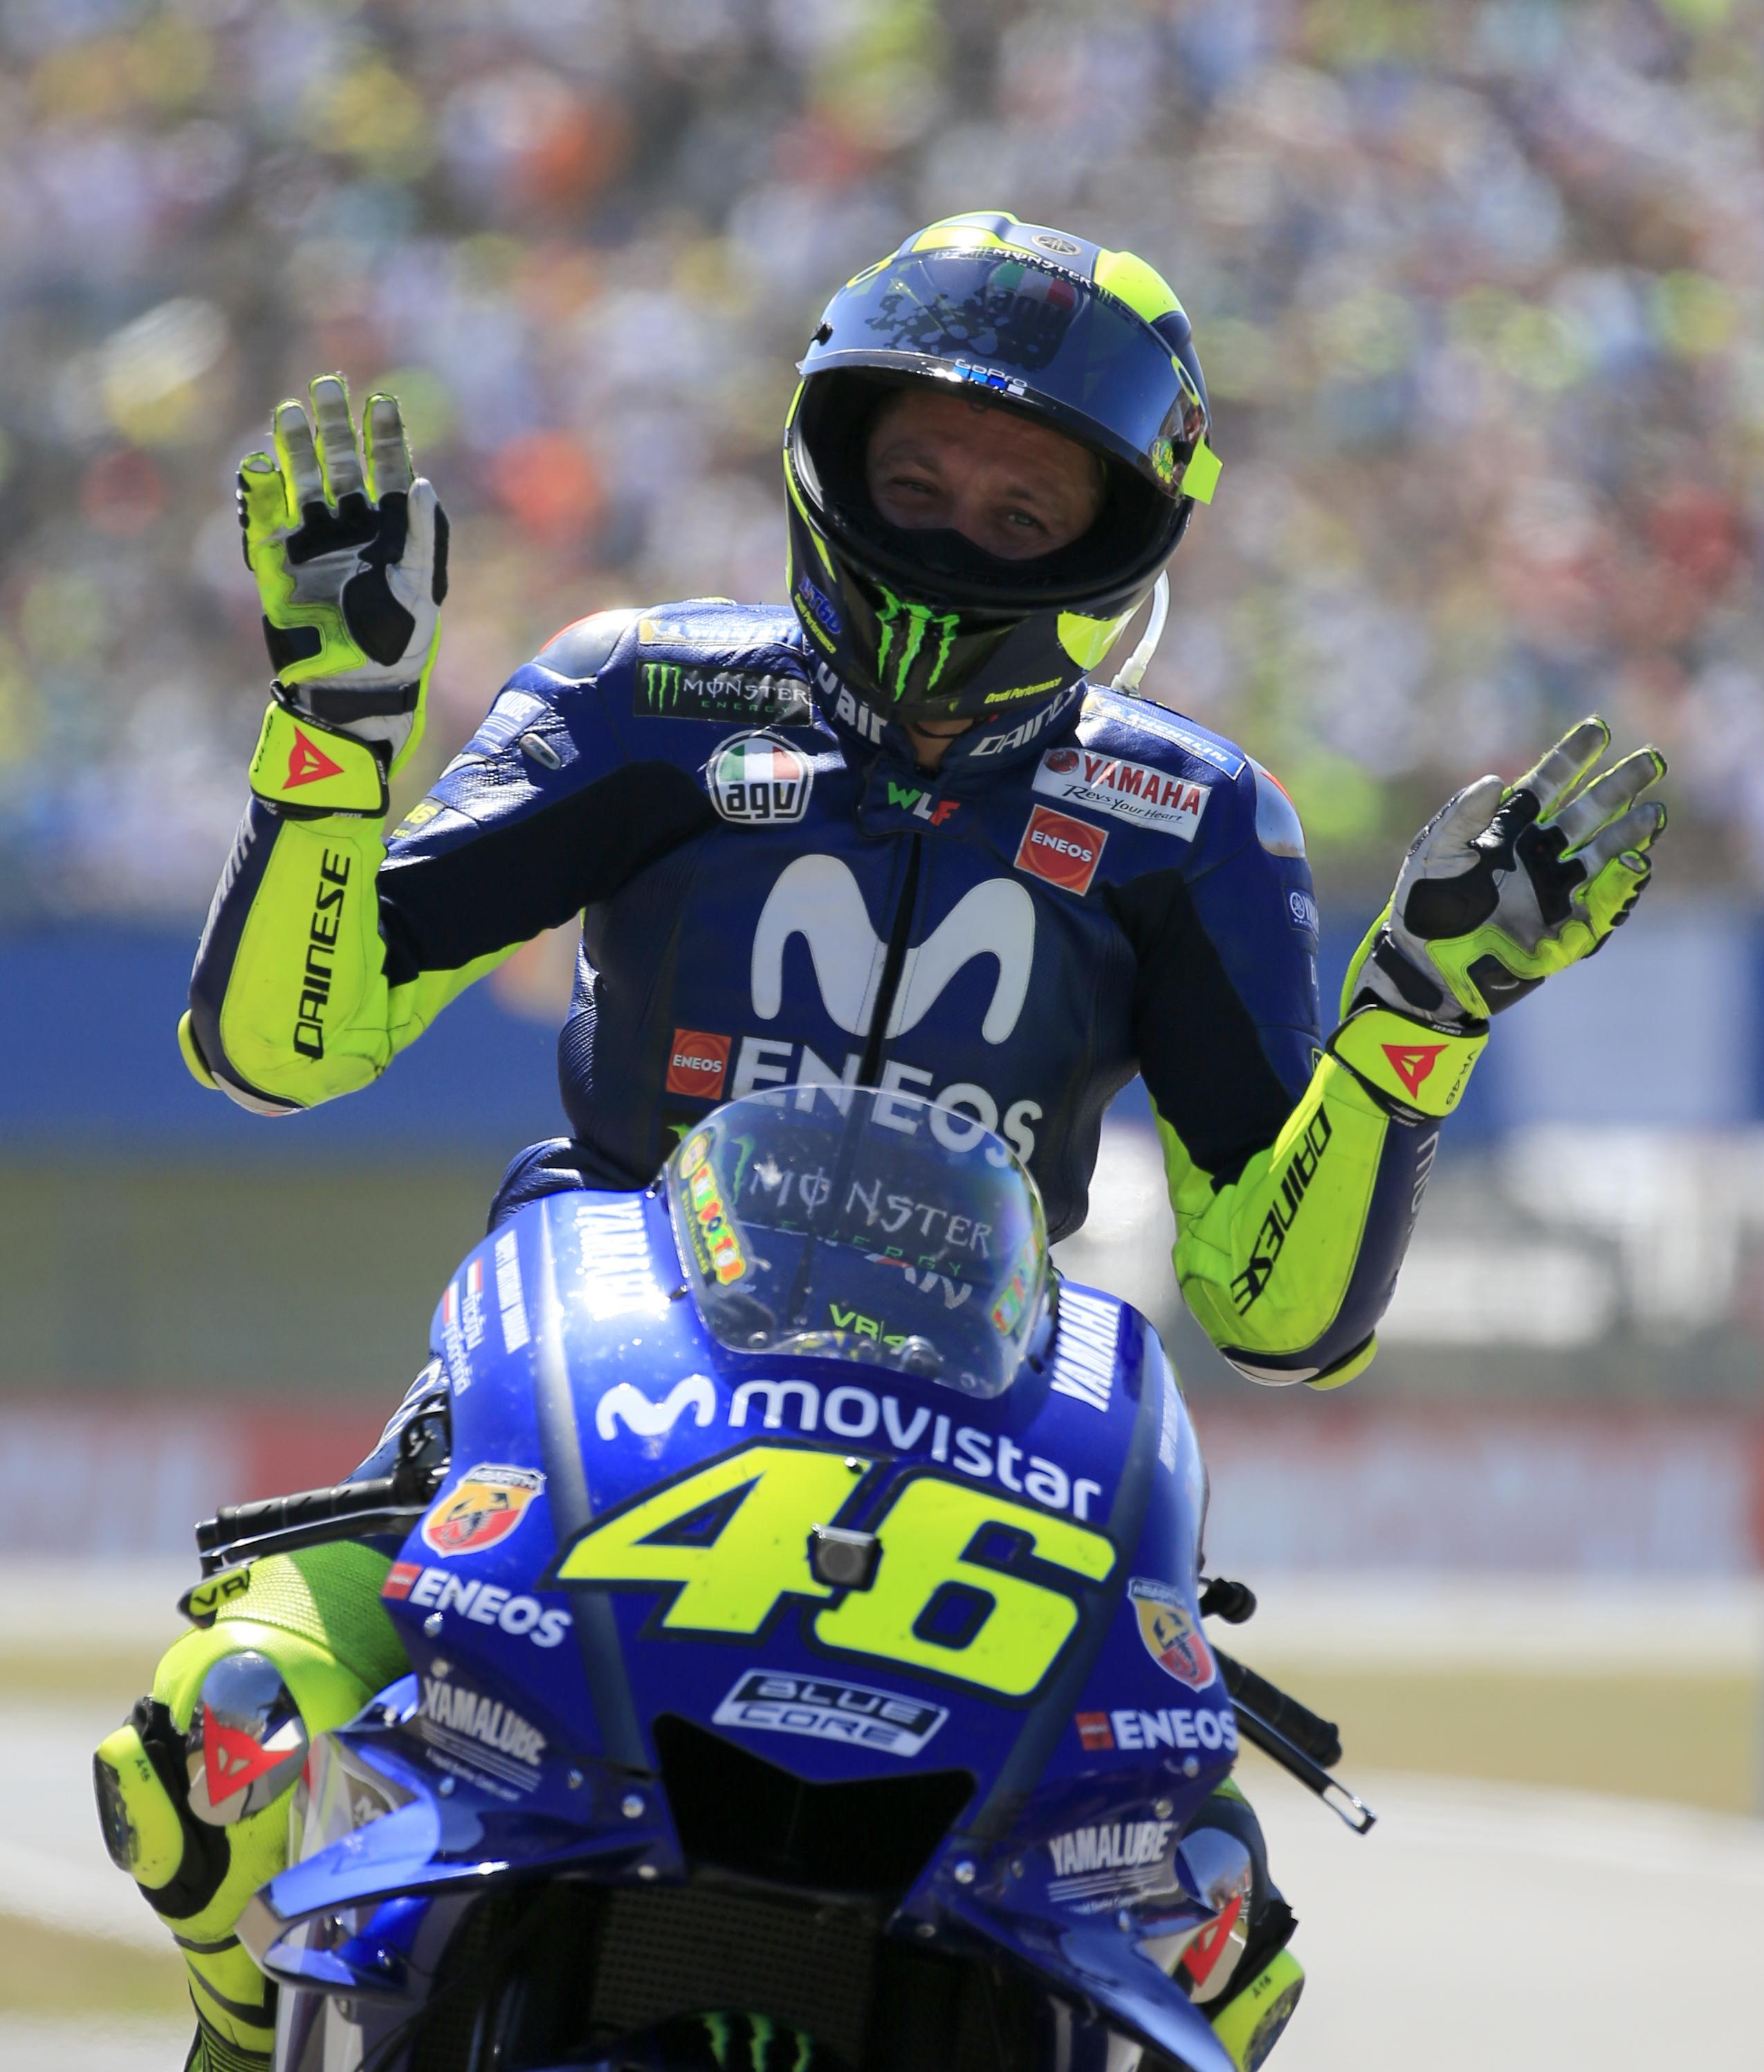 Valentino Rossi was the biggest loser during the epic battle royale at the front of the race in Holland